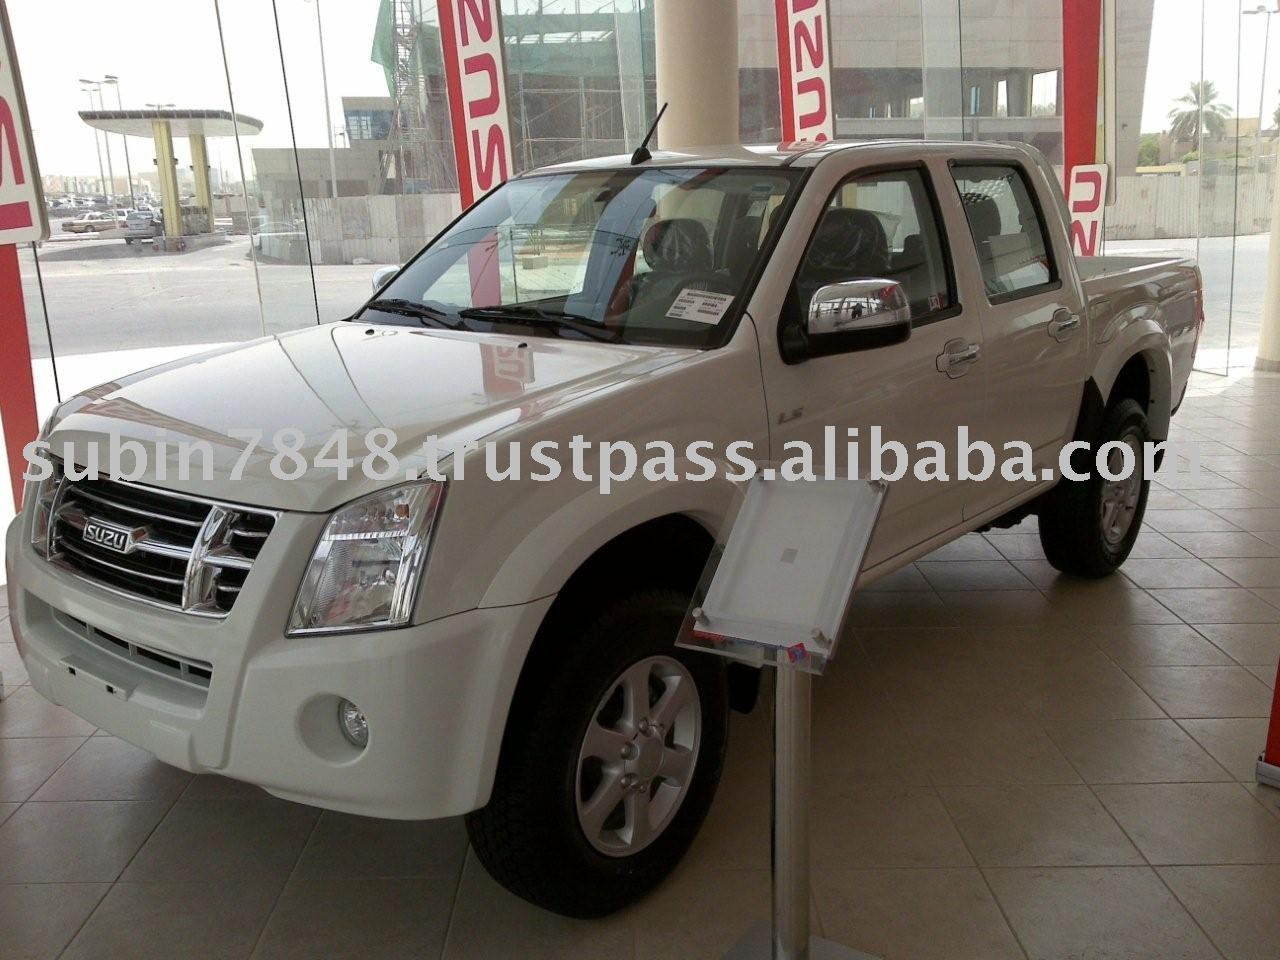 Superb Isuzu D Max 2.5l Diesel Manual 4x4 Manual New Pickup 2011   Buy Isuzu Diesel,New  Pickup,Manual Product On Alibaba.com